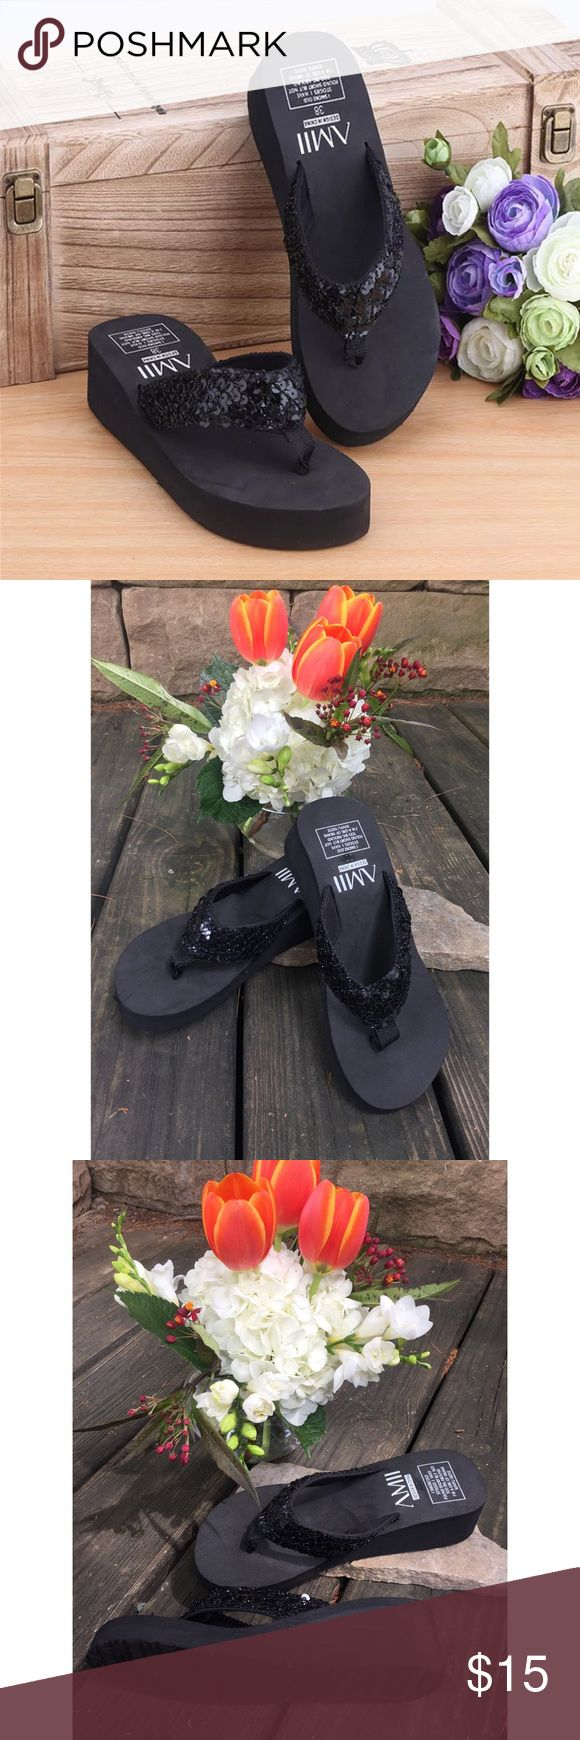 Glitter flip flops These Black platform sandals , glitter flip flops are new without tags  Brand: Brighton  Size: 7 Color: black   Tags for search: Flip flops, glitter flip flops, fashion flip flops , sandals, Flip flops platform, summer sandals, beach sandals, flip flops, Summer flip flops Shoes Sandals